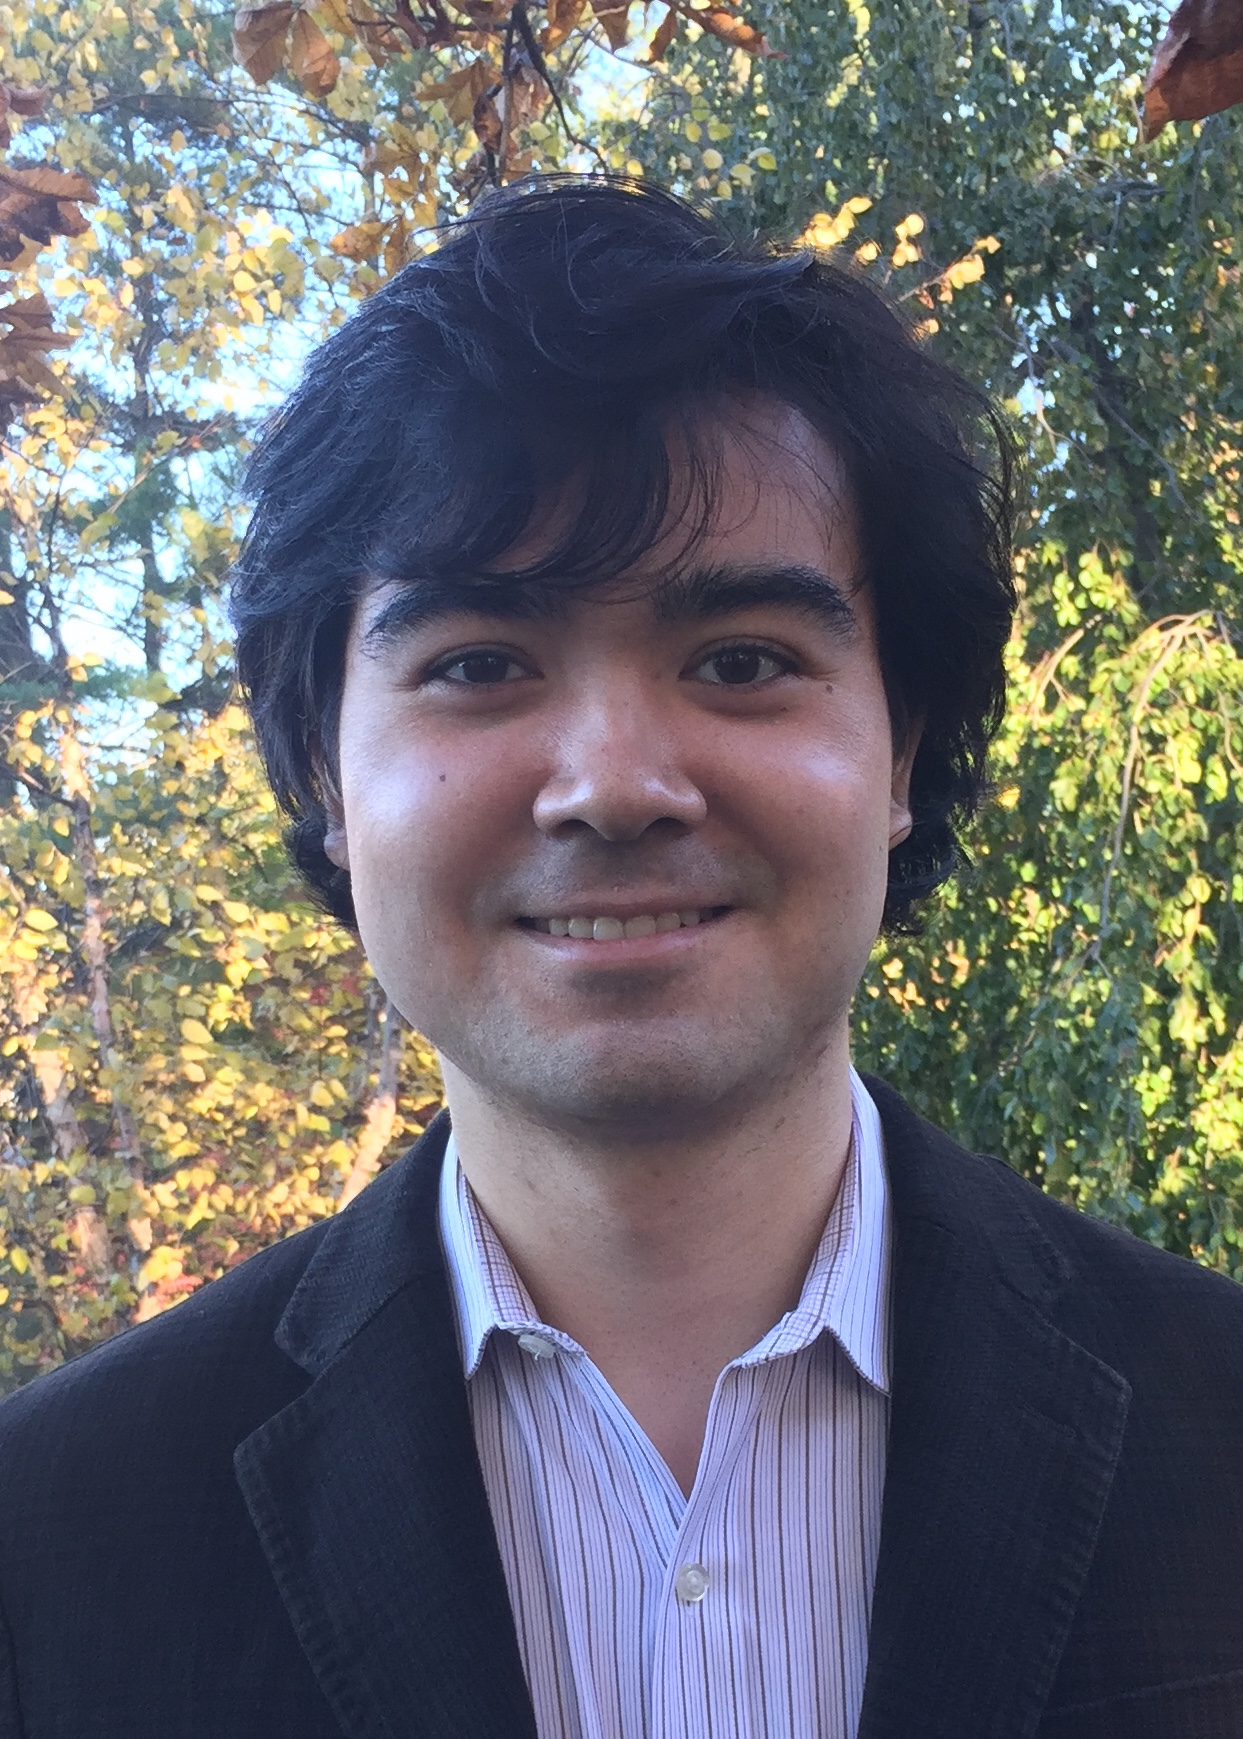 Michael Alvarez - Columbia University, B.A. Philosophy (John Jay Scholar)SAT and ACT: 99th percentileMichael's life-long passion is literature. Even before college, Michael devoured Shakespeare, Austen, Nabokov, Kawabata, and many others. This love of literature naturally progressed to the pursuit of philosophy while pursuing an undergraduate degree at Columbia University. Michael has always sought to learn other languages, studying Japanese and Chinese while at Columbia, to add to his Spanish studies. He also pursued Java computer programming, studied specialized STEM topics like Oceanography, and contributed to the Columbia Daily Spectator as an author and editor.Michael has always enjoyed helping students with their SATs and schoolwork. He also enjoys volunteering with special needs students at Cerebral Palsy of North Jersey. Michael's philosophy background has enabled him to see his students as unique thinkers with whom he is in inspiring dialogue, whether they are wrestling with a difficult literary passage or a complex algebraic equation.